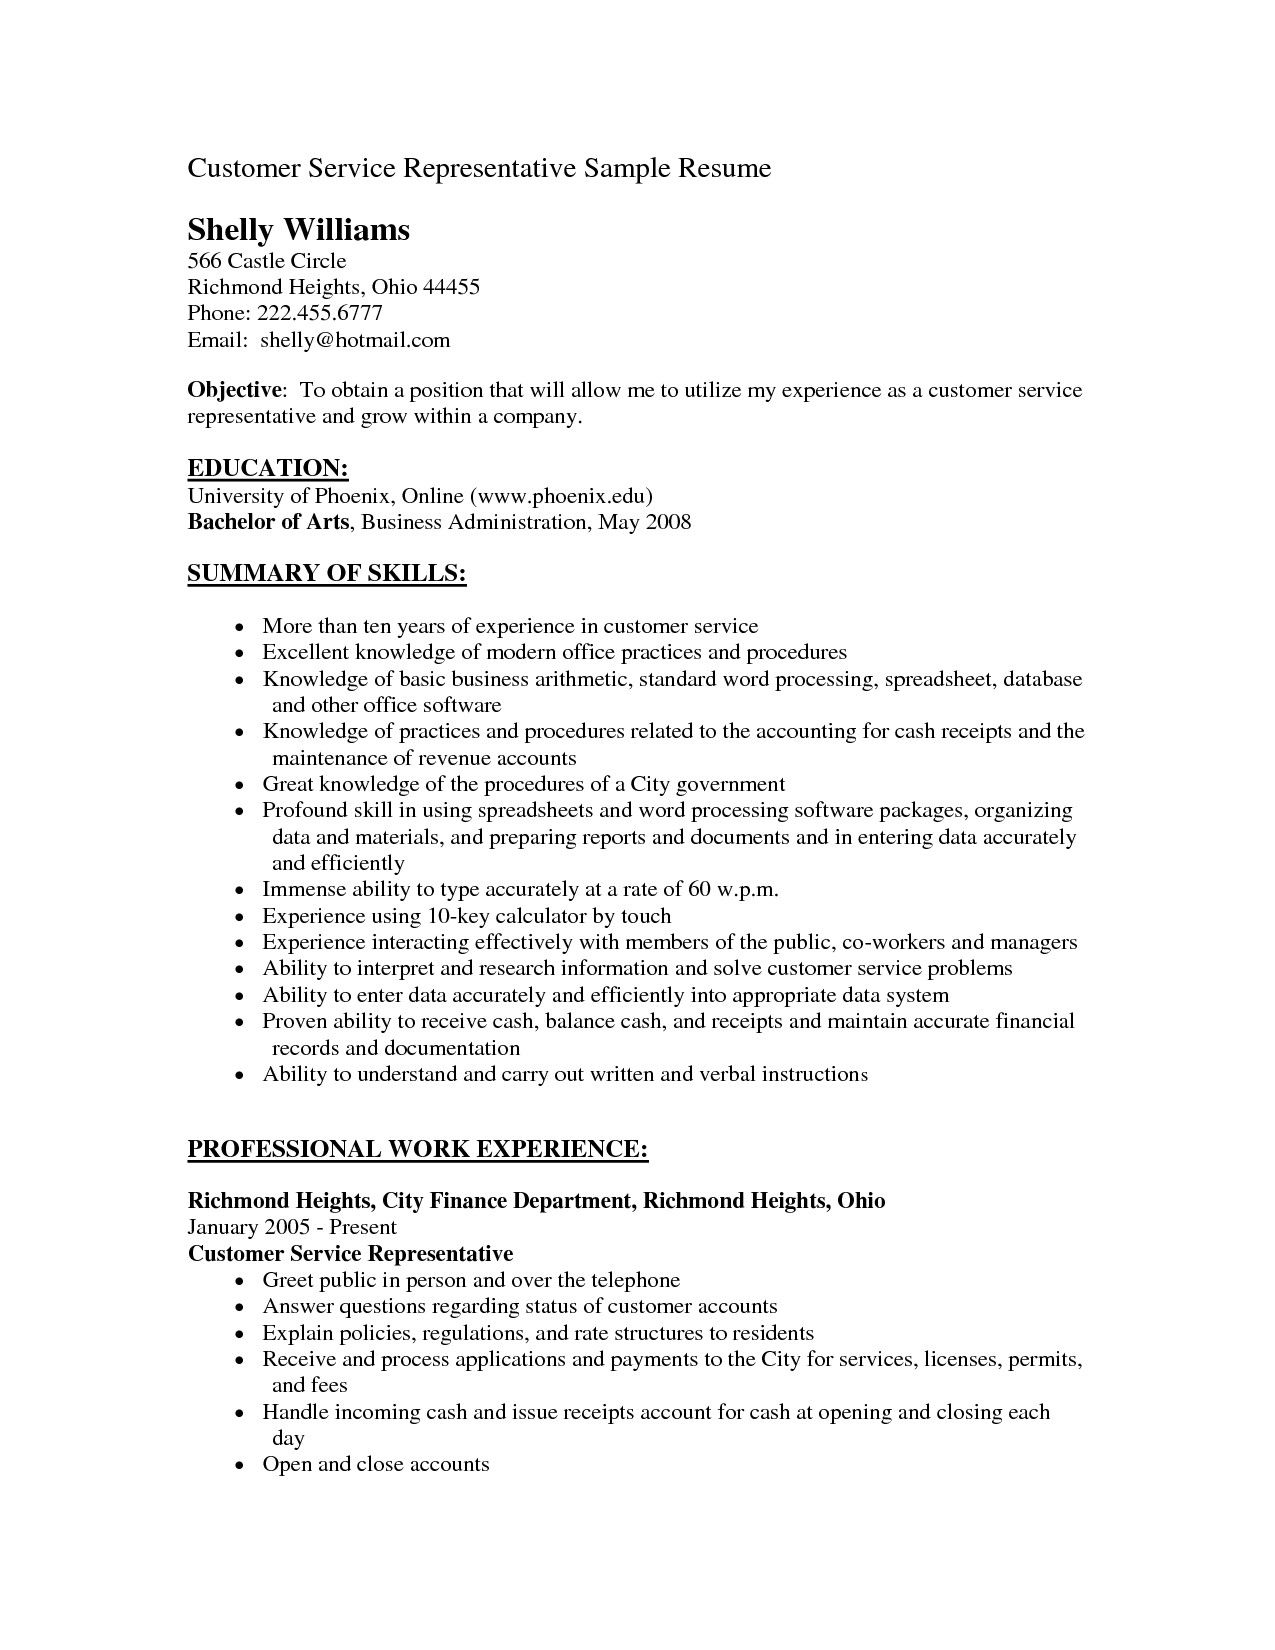 the best ideas for objective on resume examples job apprentice electrician template part time student it statement